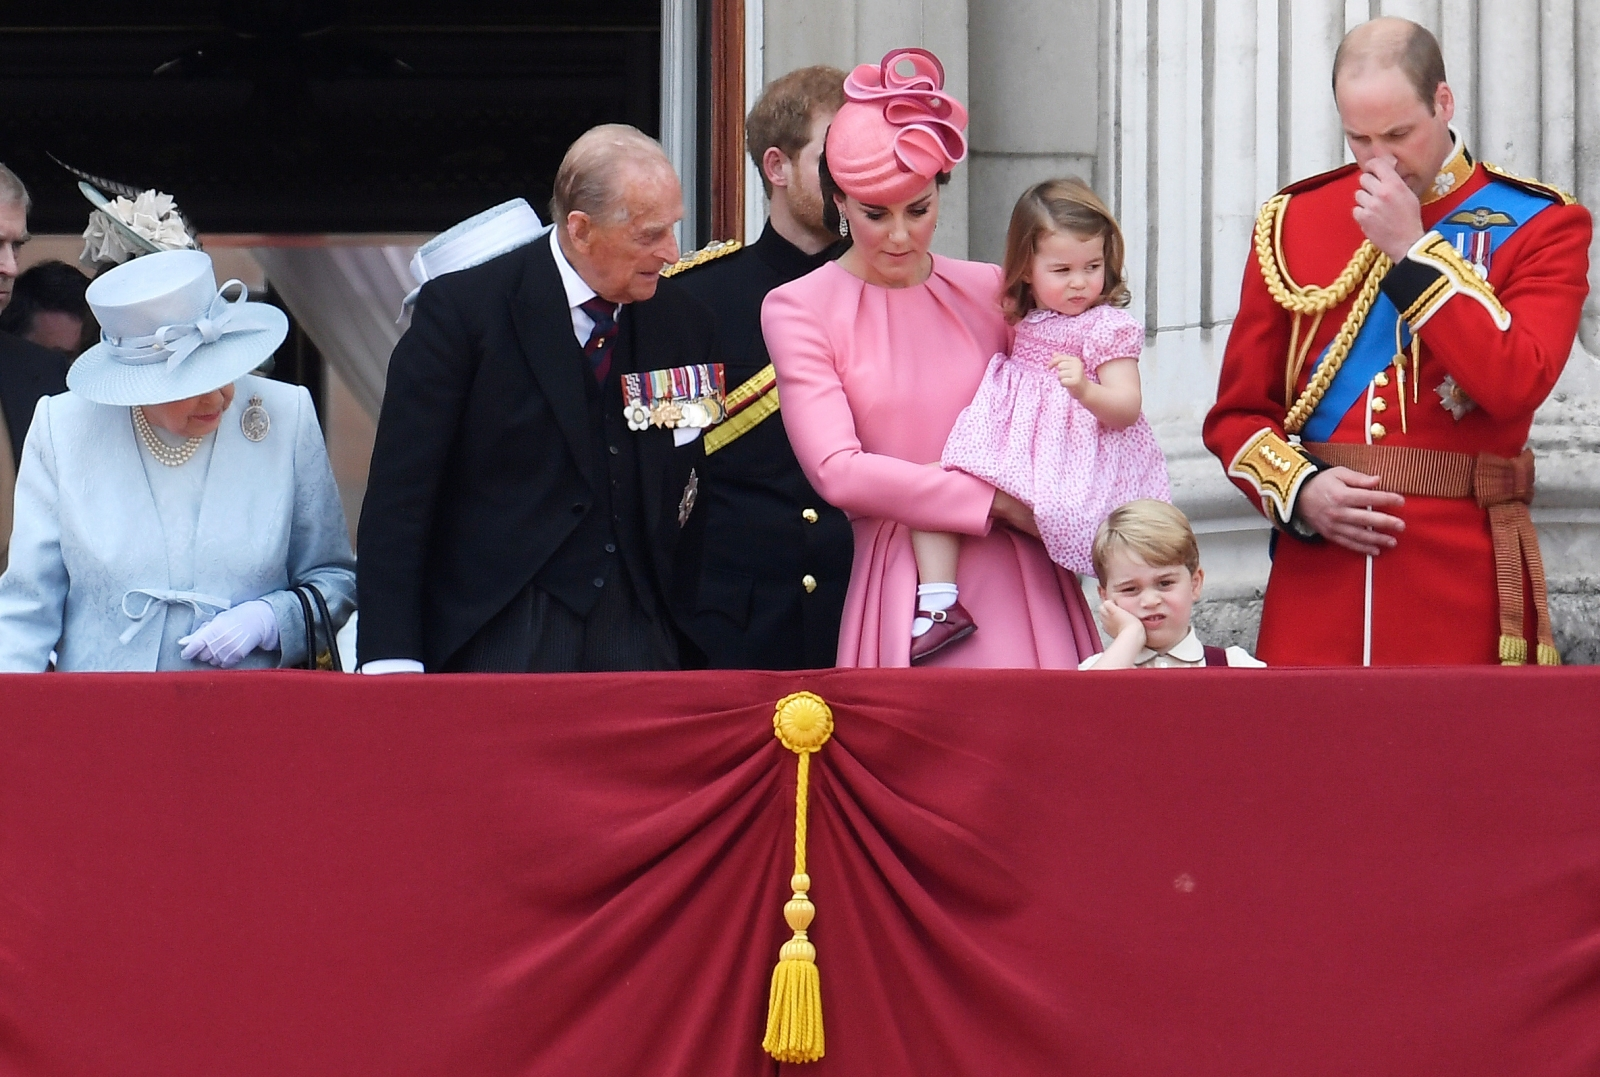 Air Force Birthday 2017 >> Prince George looks royally unamused at the Queen's birthday celebrations